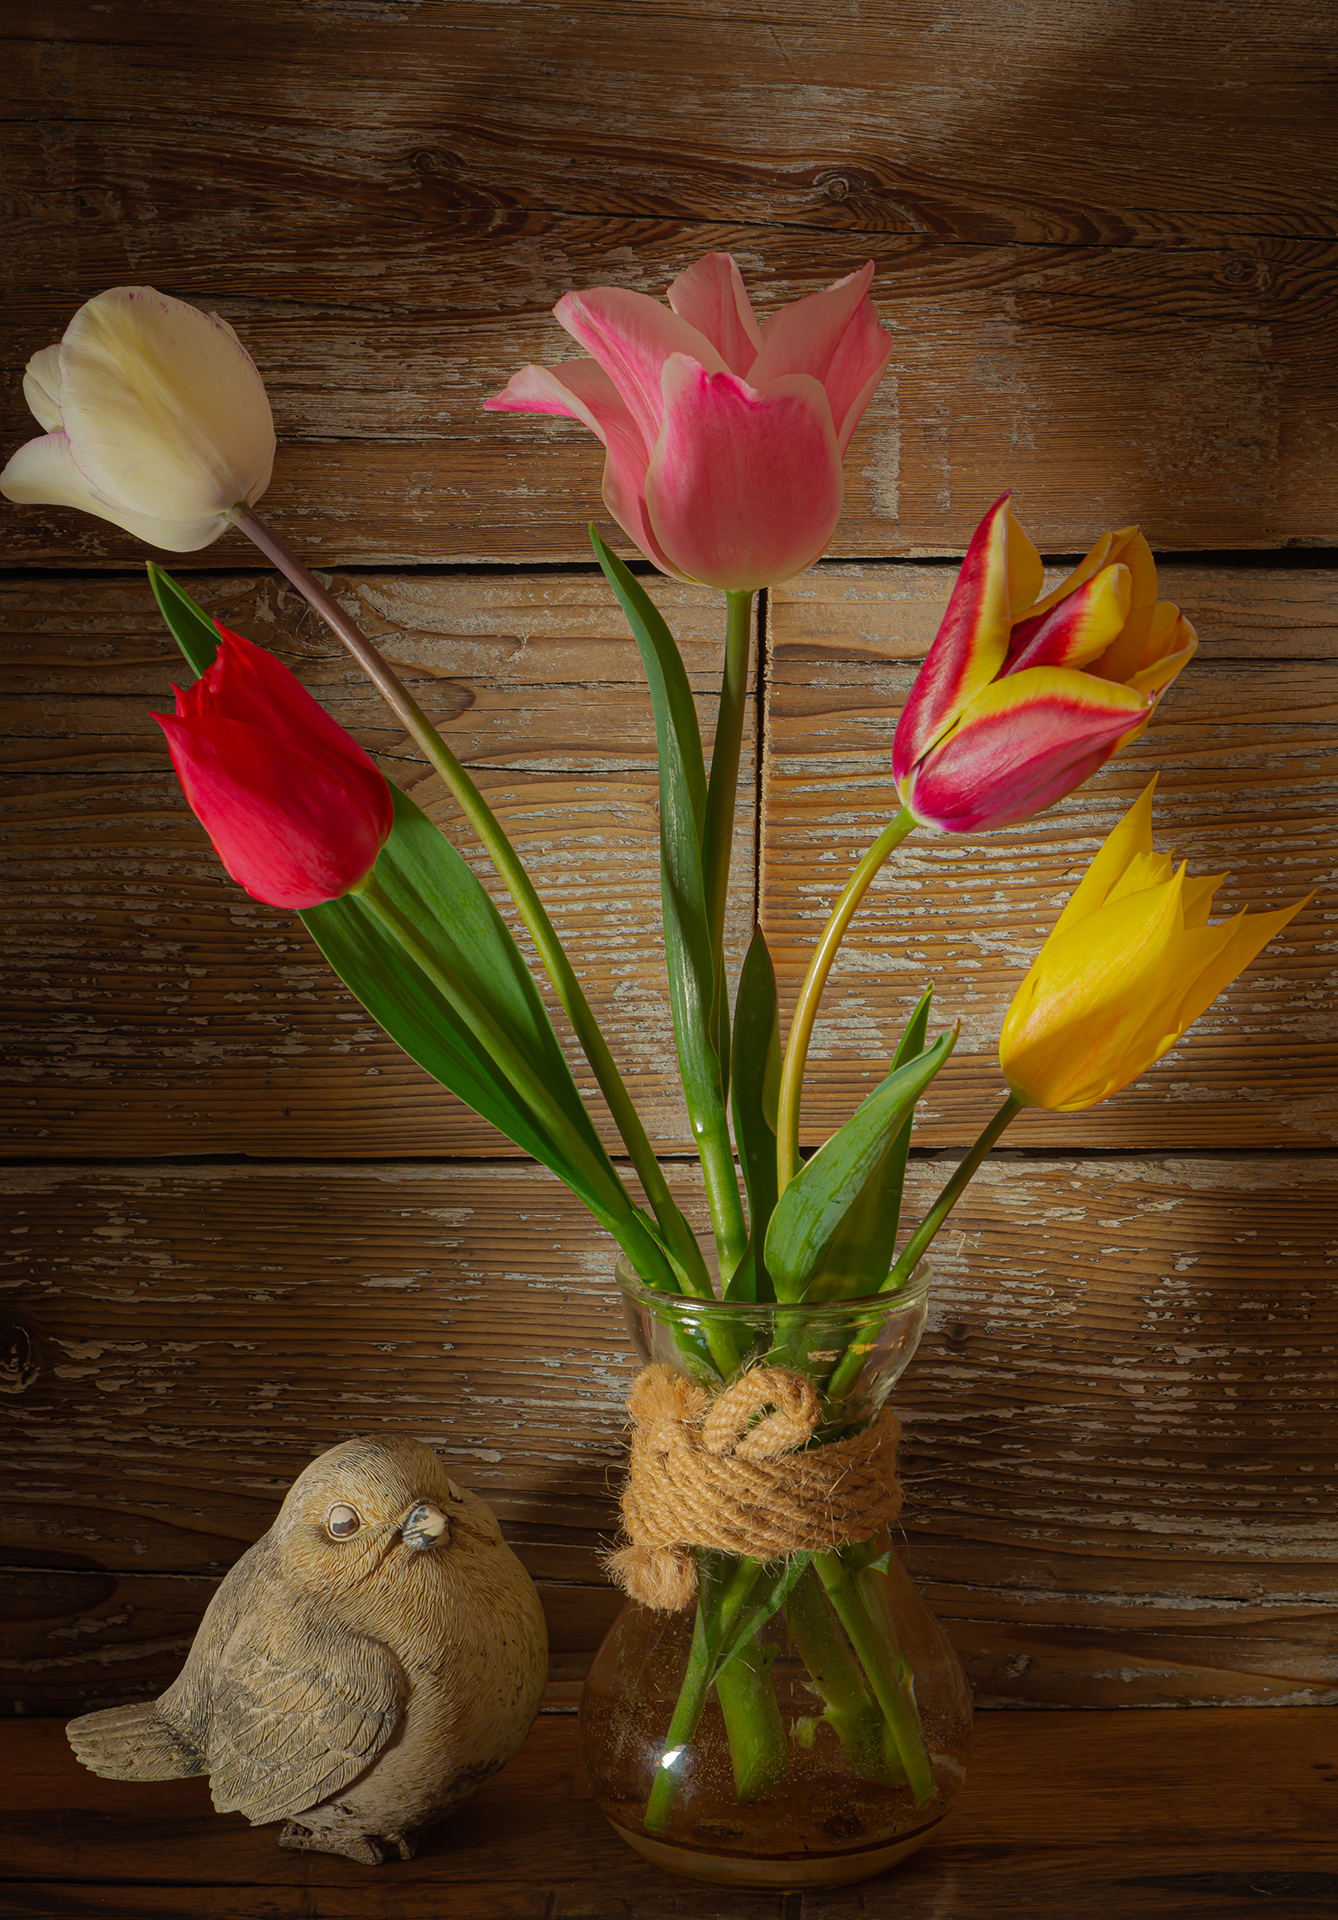 Tulips and the bird